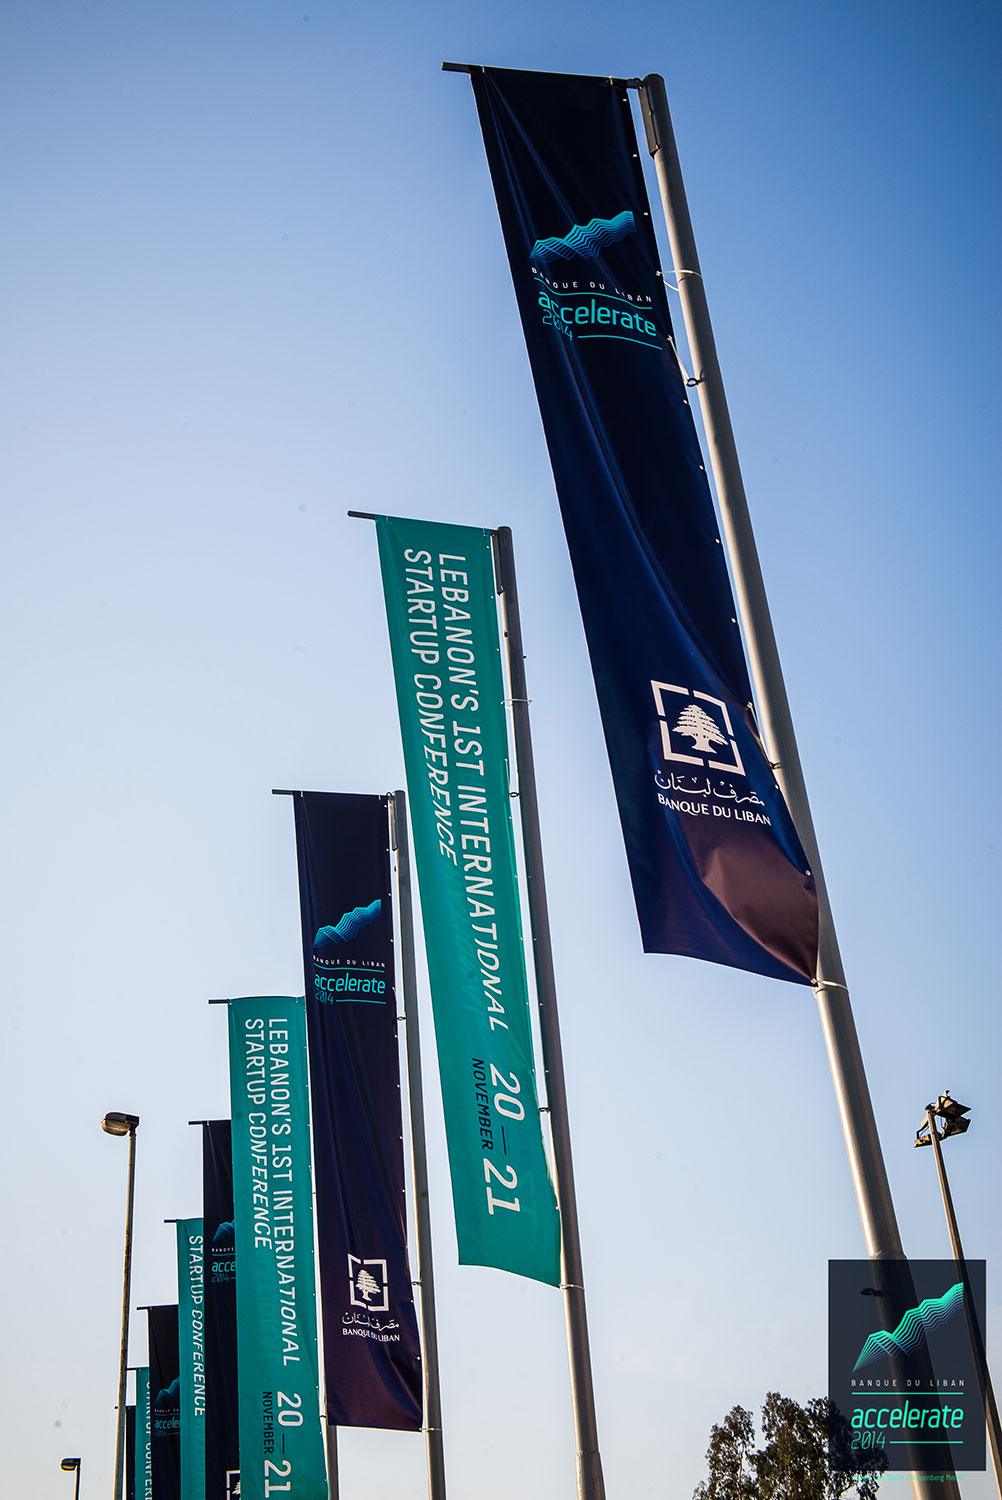 bdlaccelerateflags